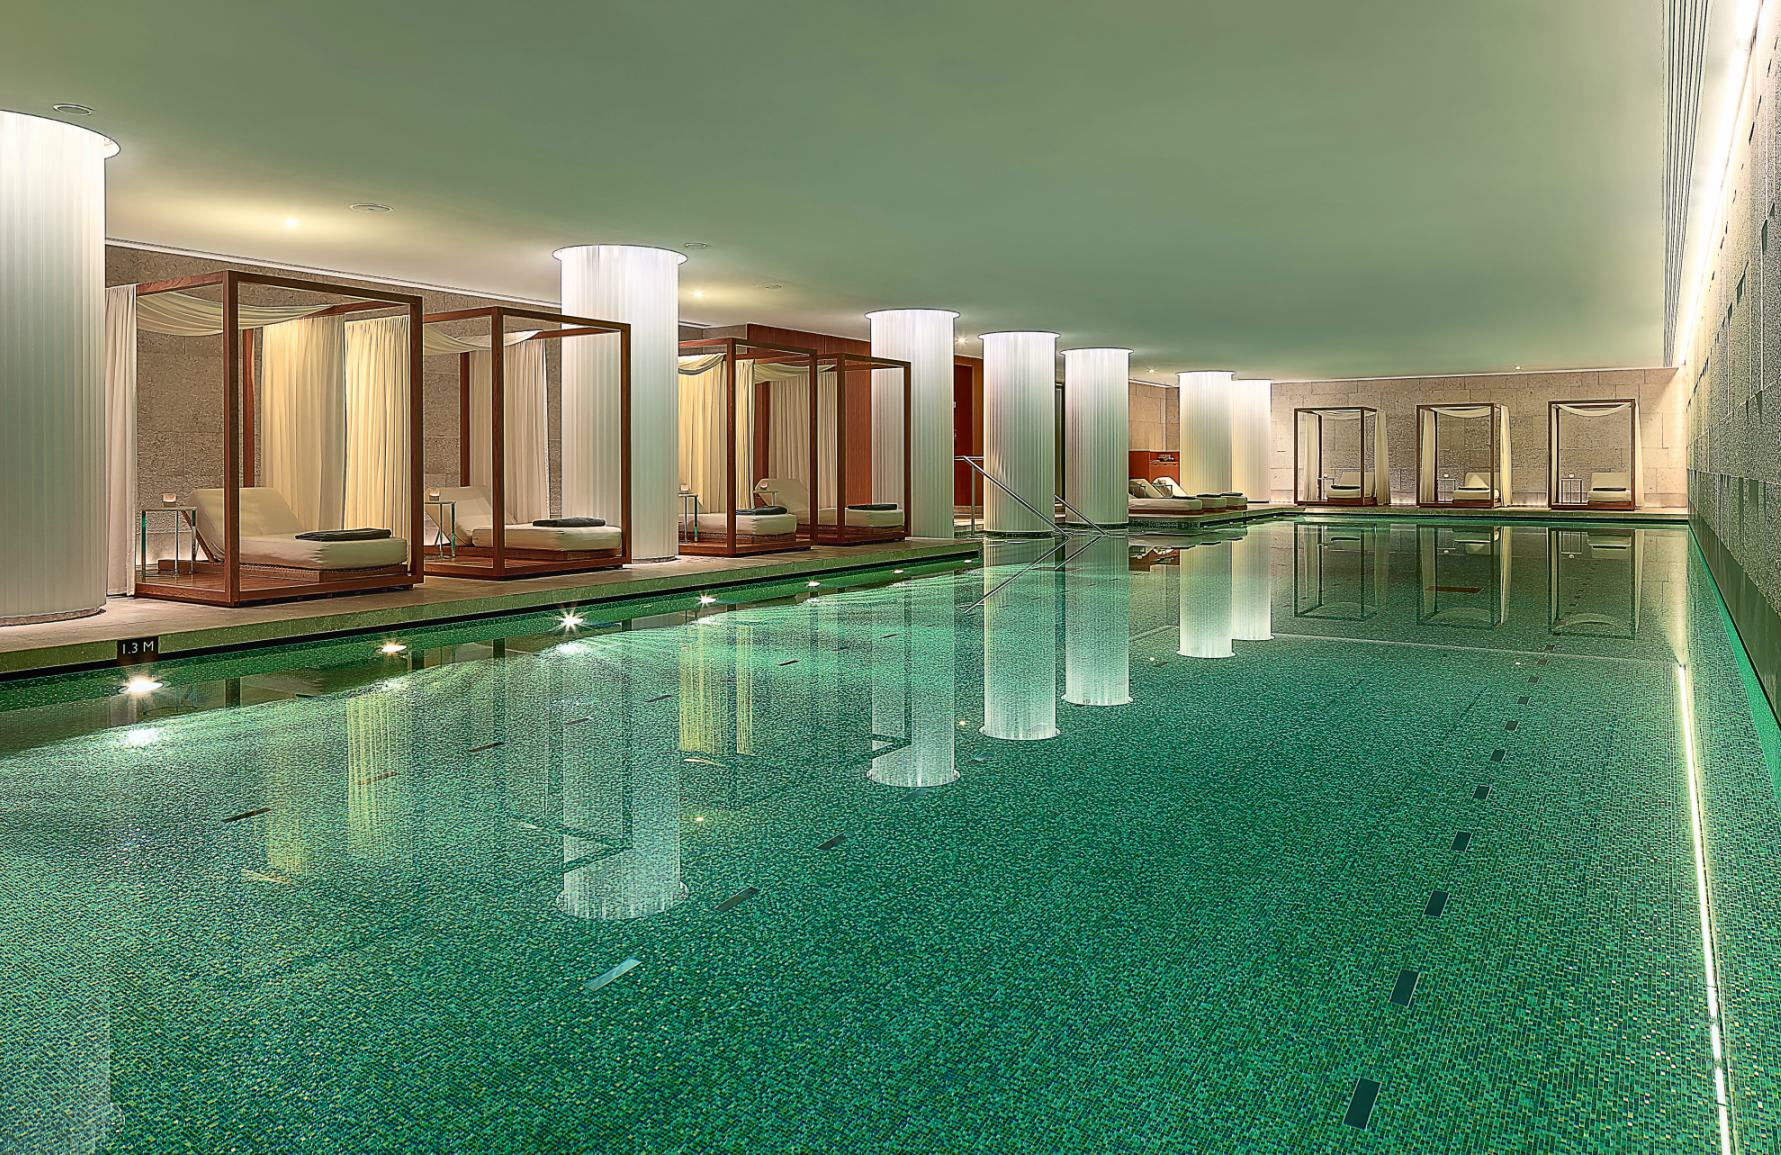 Best Spa In London | The Bulgari Spa | London Spa Hotel | Read more in The Luxurist at LuxDeco.com